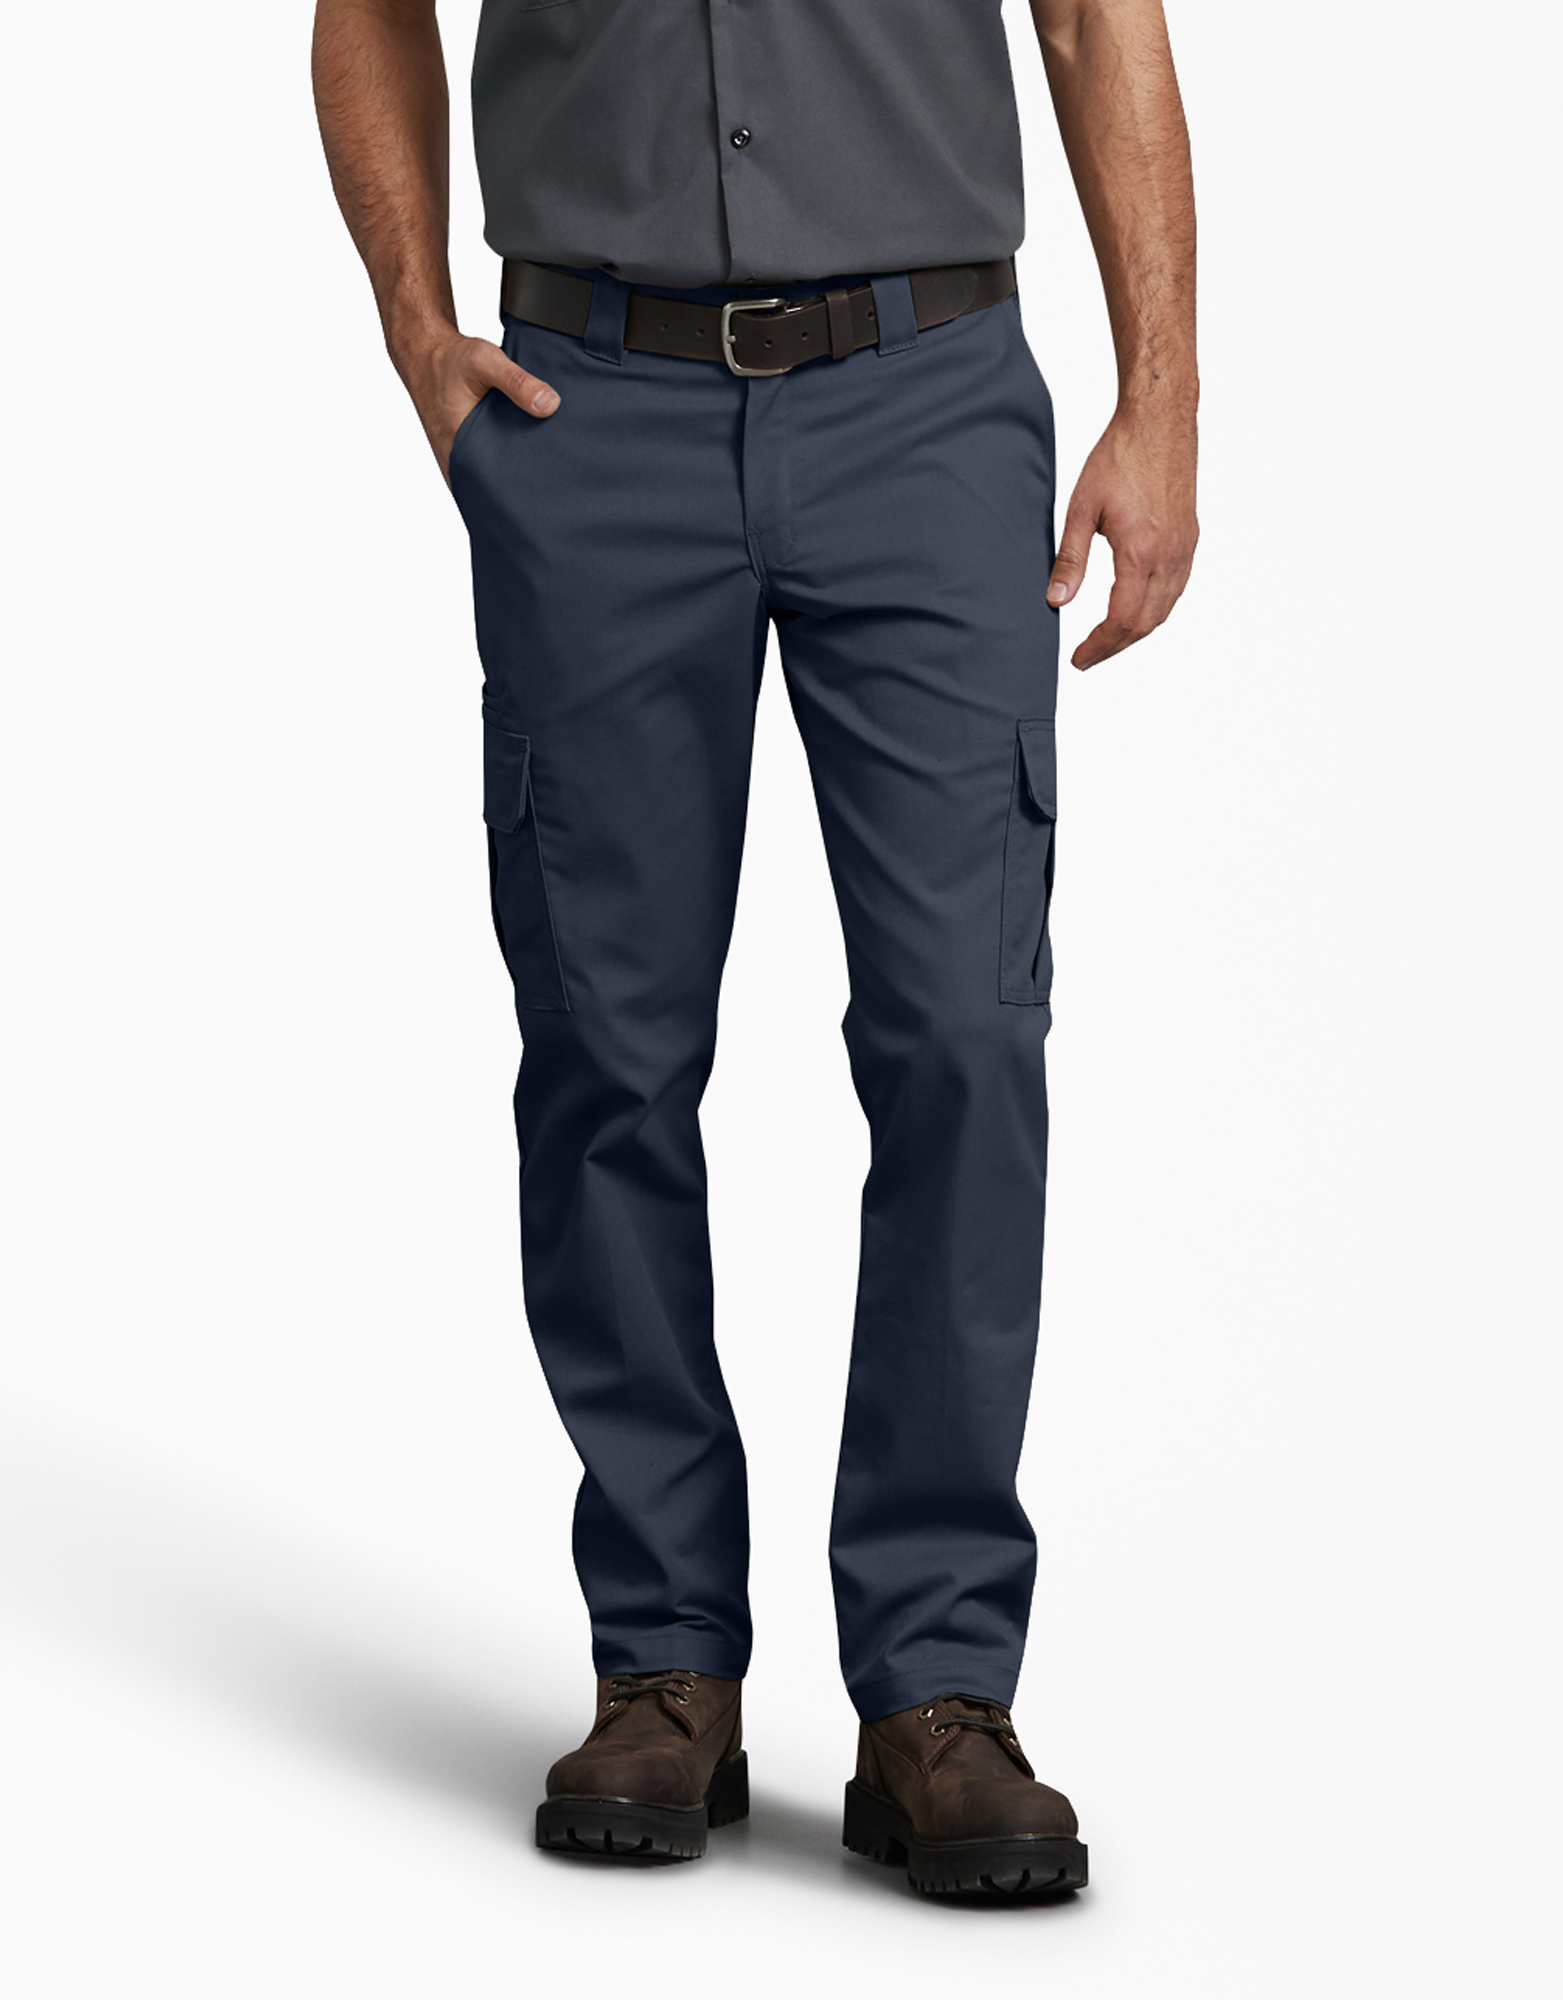 FLEX Slim Fit Straight Leg Cargo Pants - Dark Navy (DN)